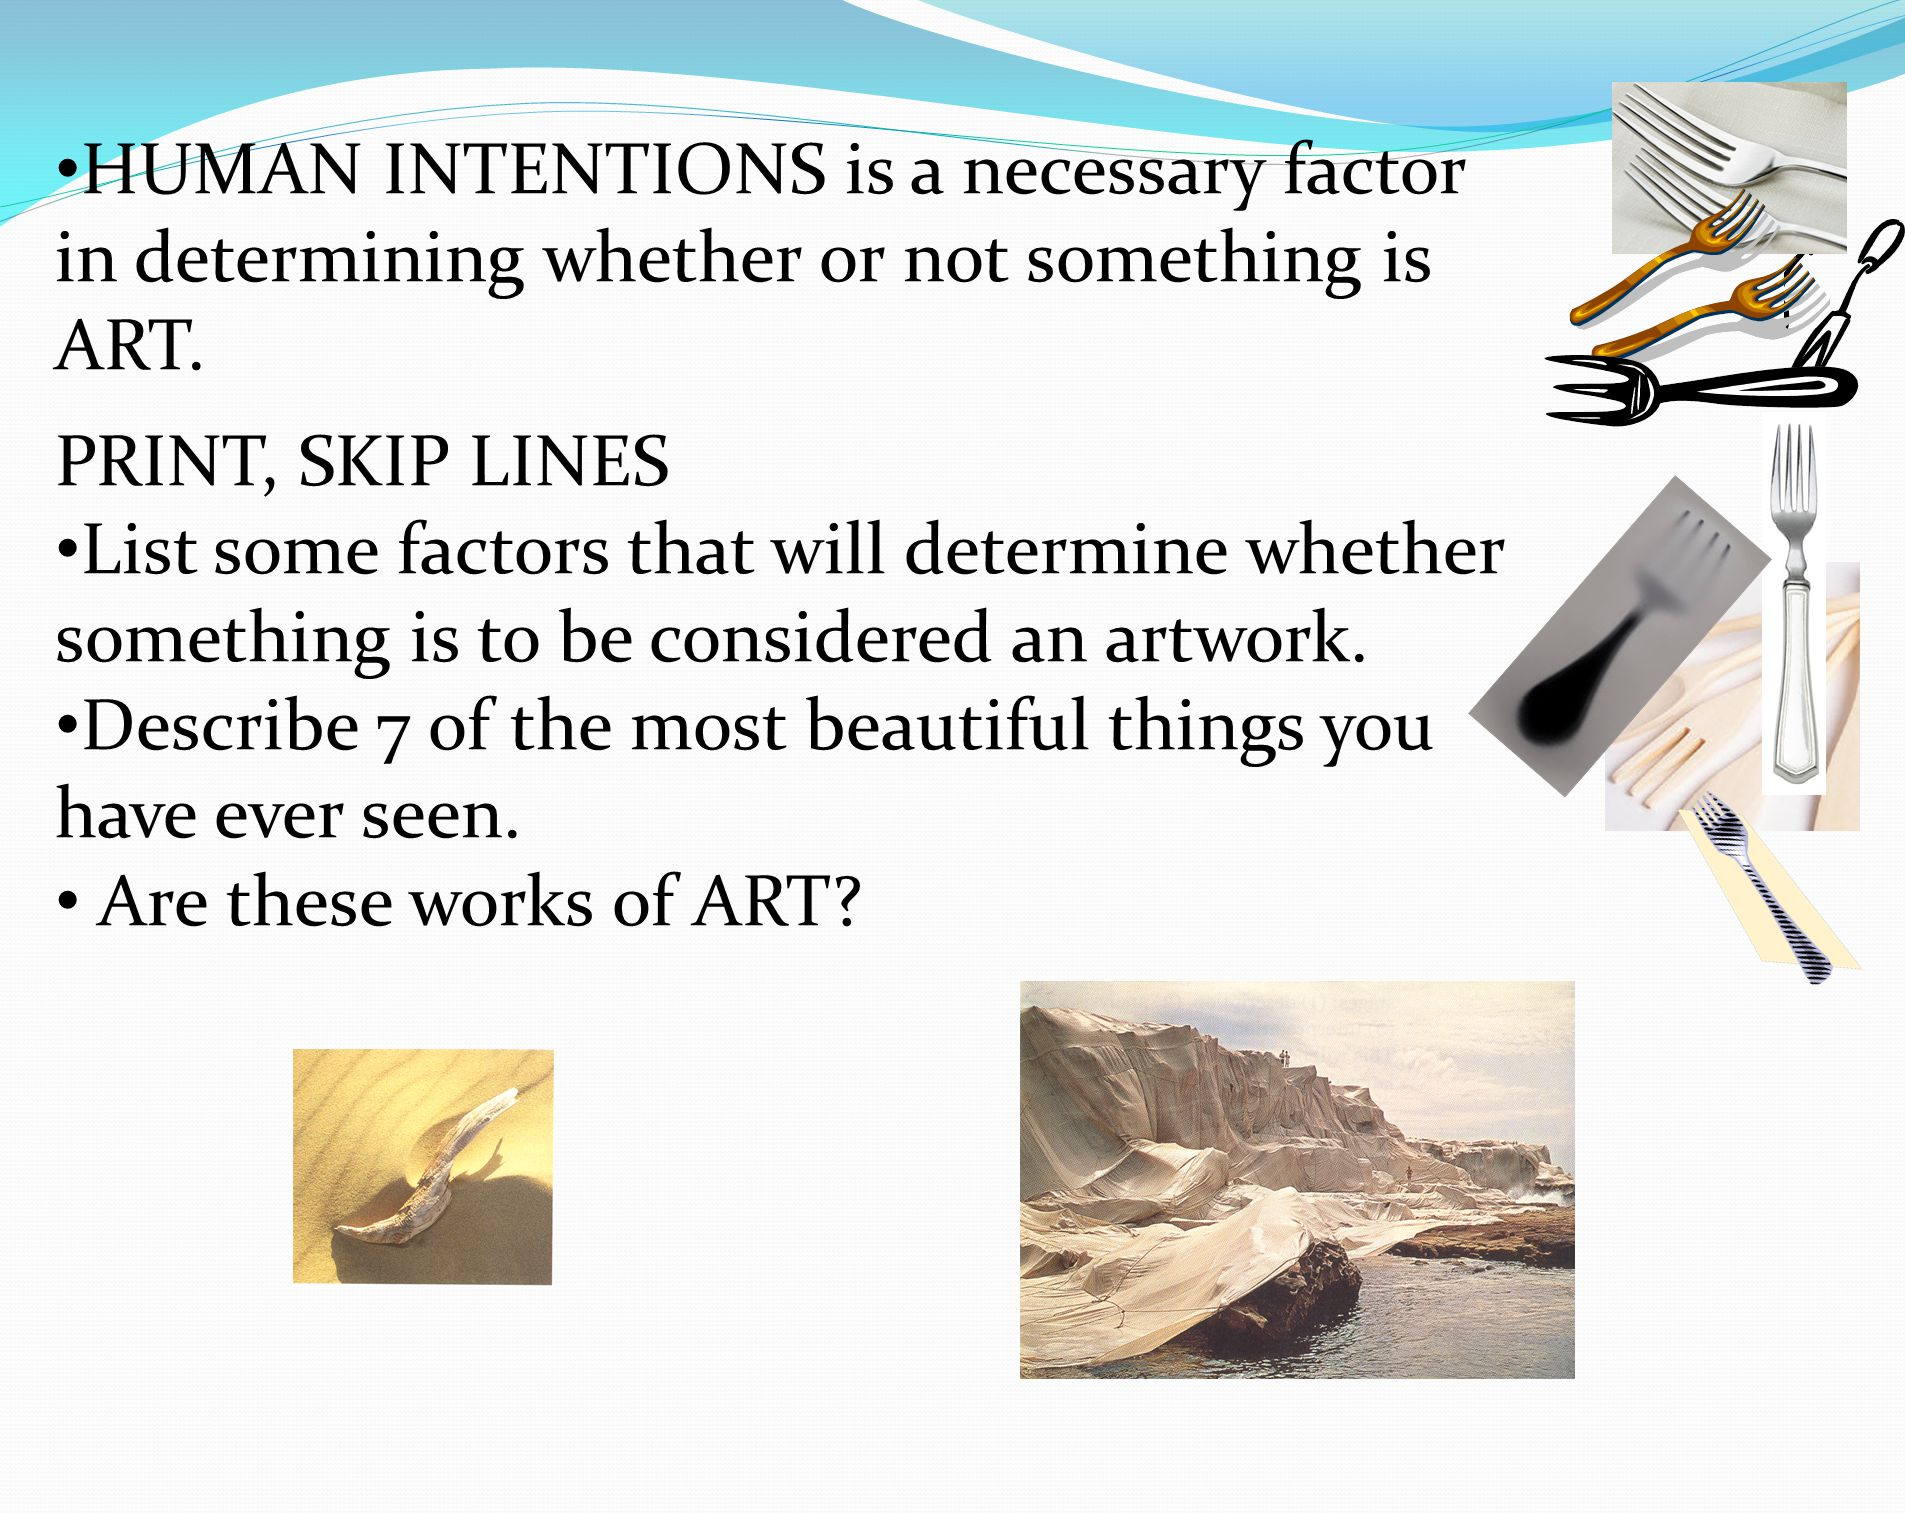 HUMAN INTENTIONS is a necessary factor in determining whether or not something is ART. PRINT, SKIP LINES List some factors that will determine whether